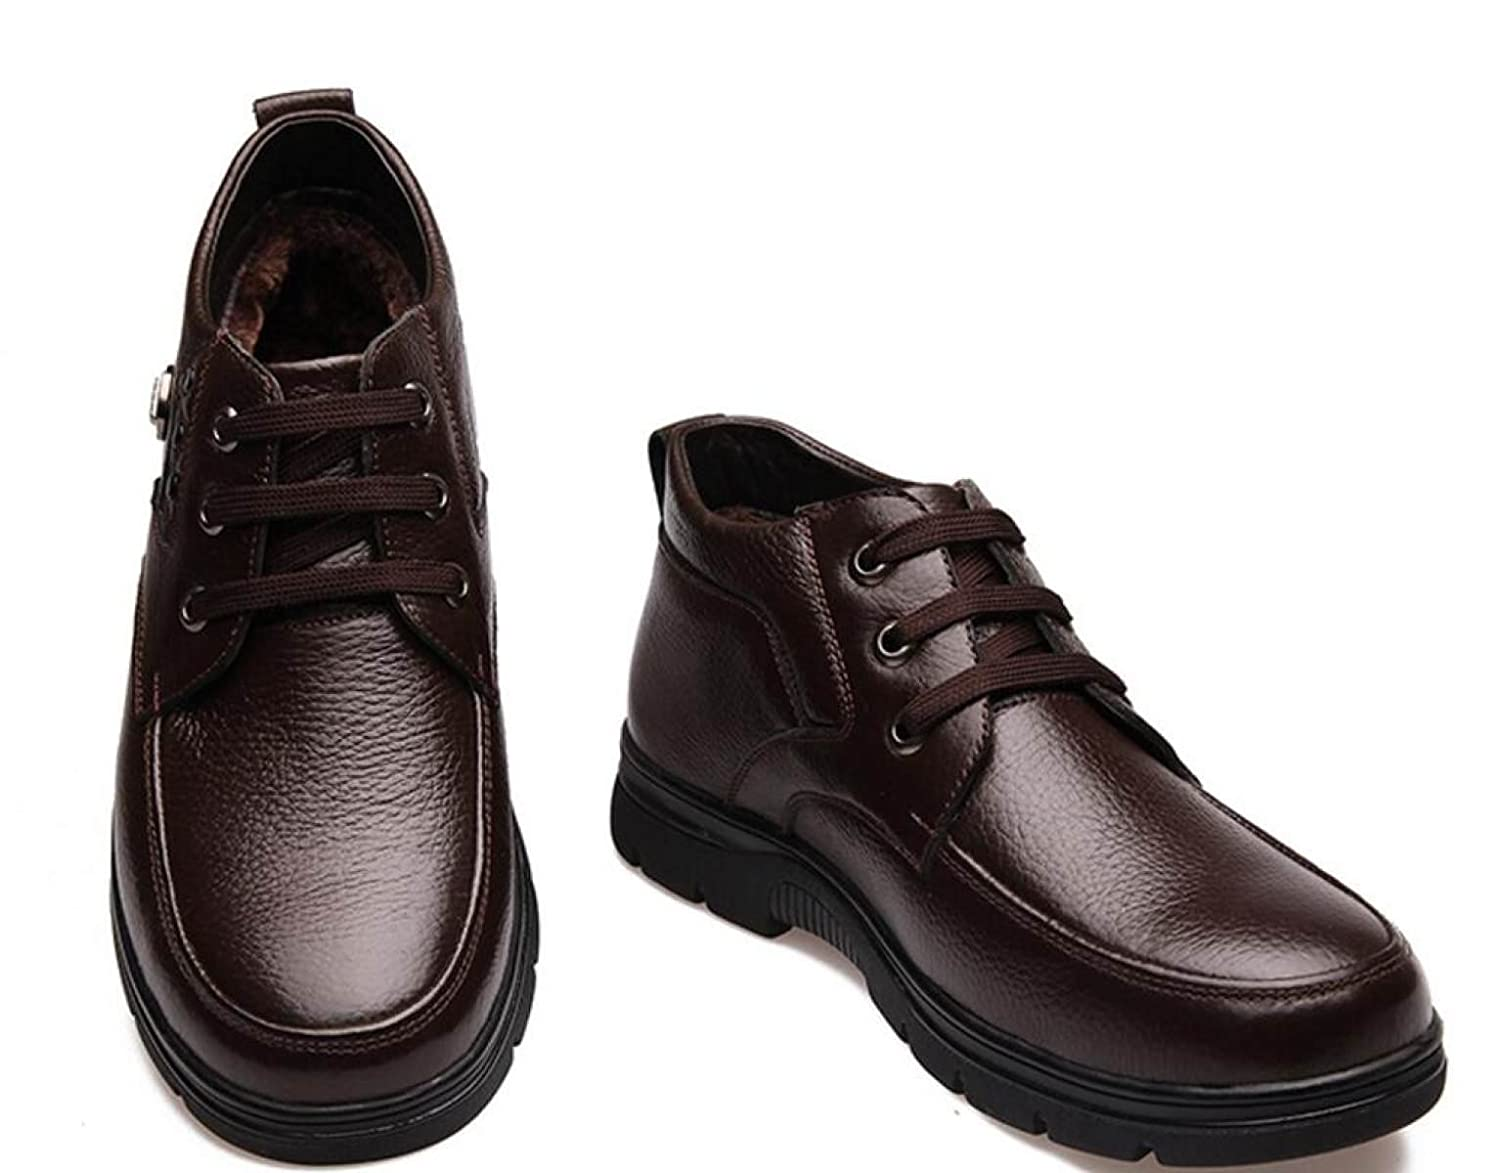 CHENSH Male Winter Warm Cotton Shoes In The Elderly Thickening With Non - Slip  Shoes,Brown-41: Amazon.co.uk: Clothing